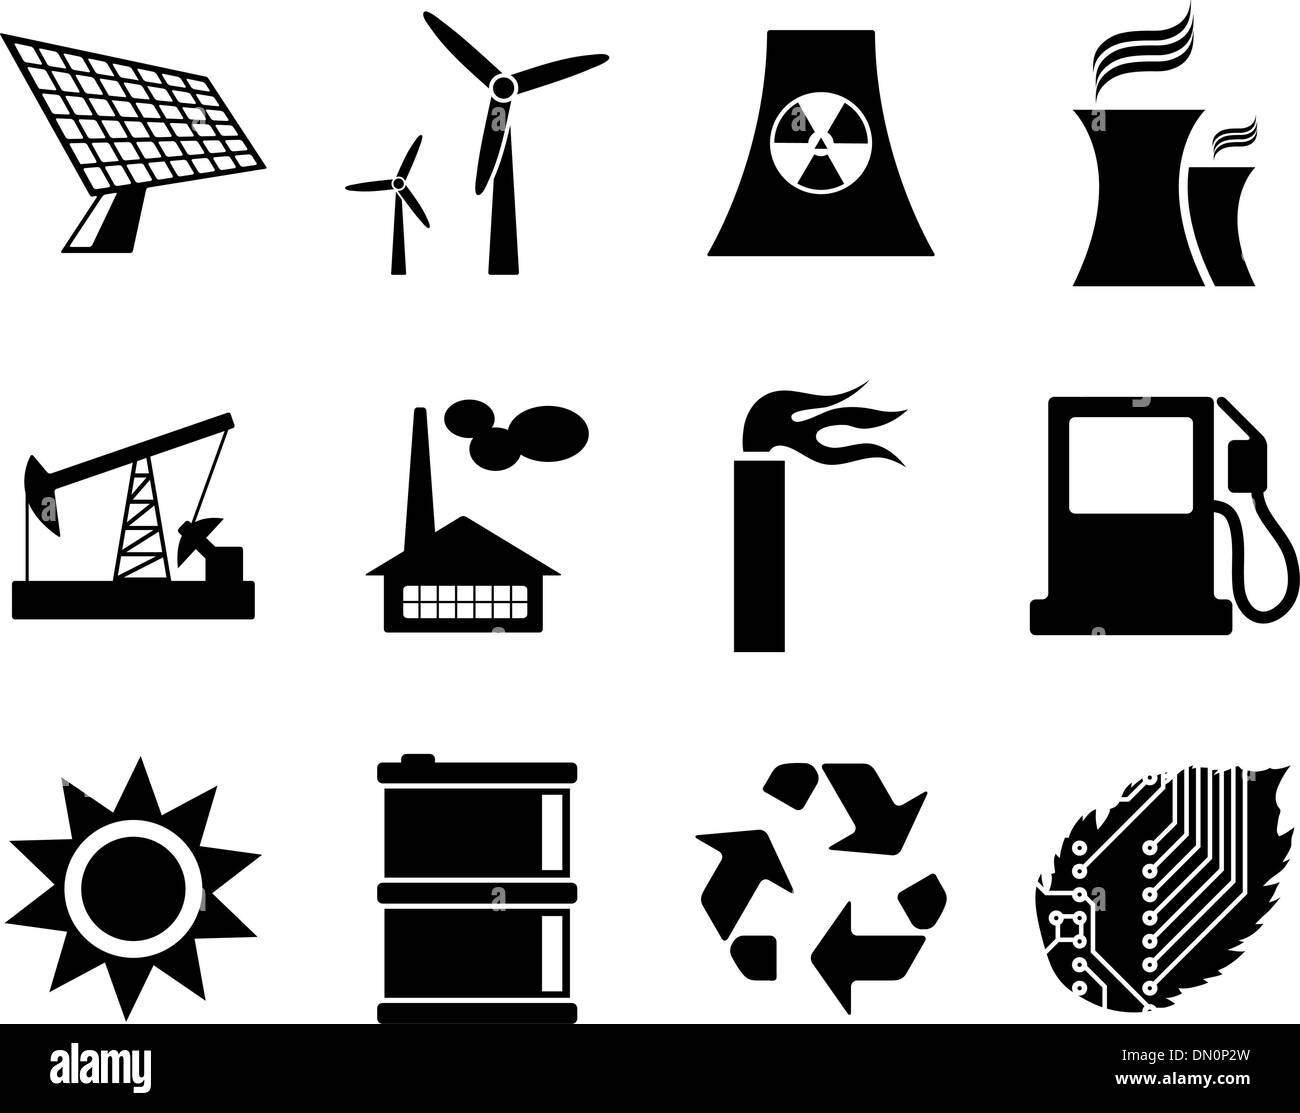 Electricity, power and energy icon set. - Stock Image